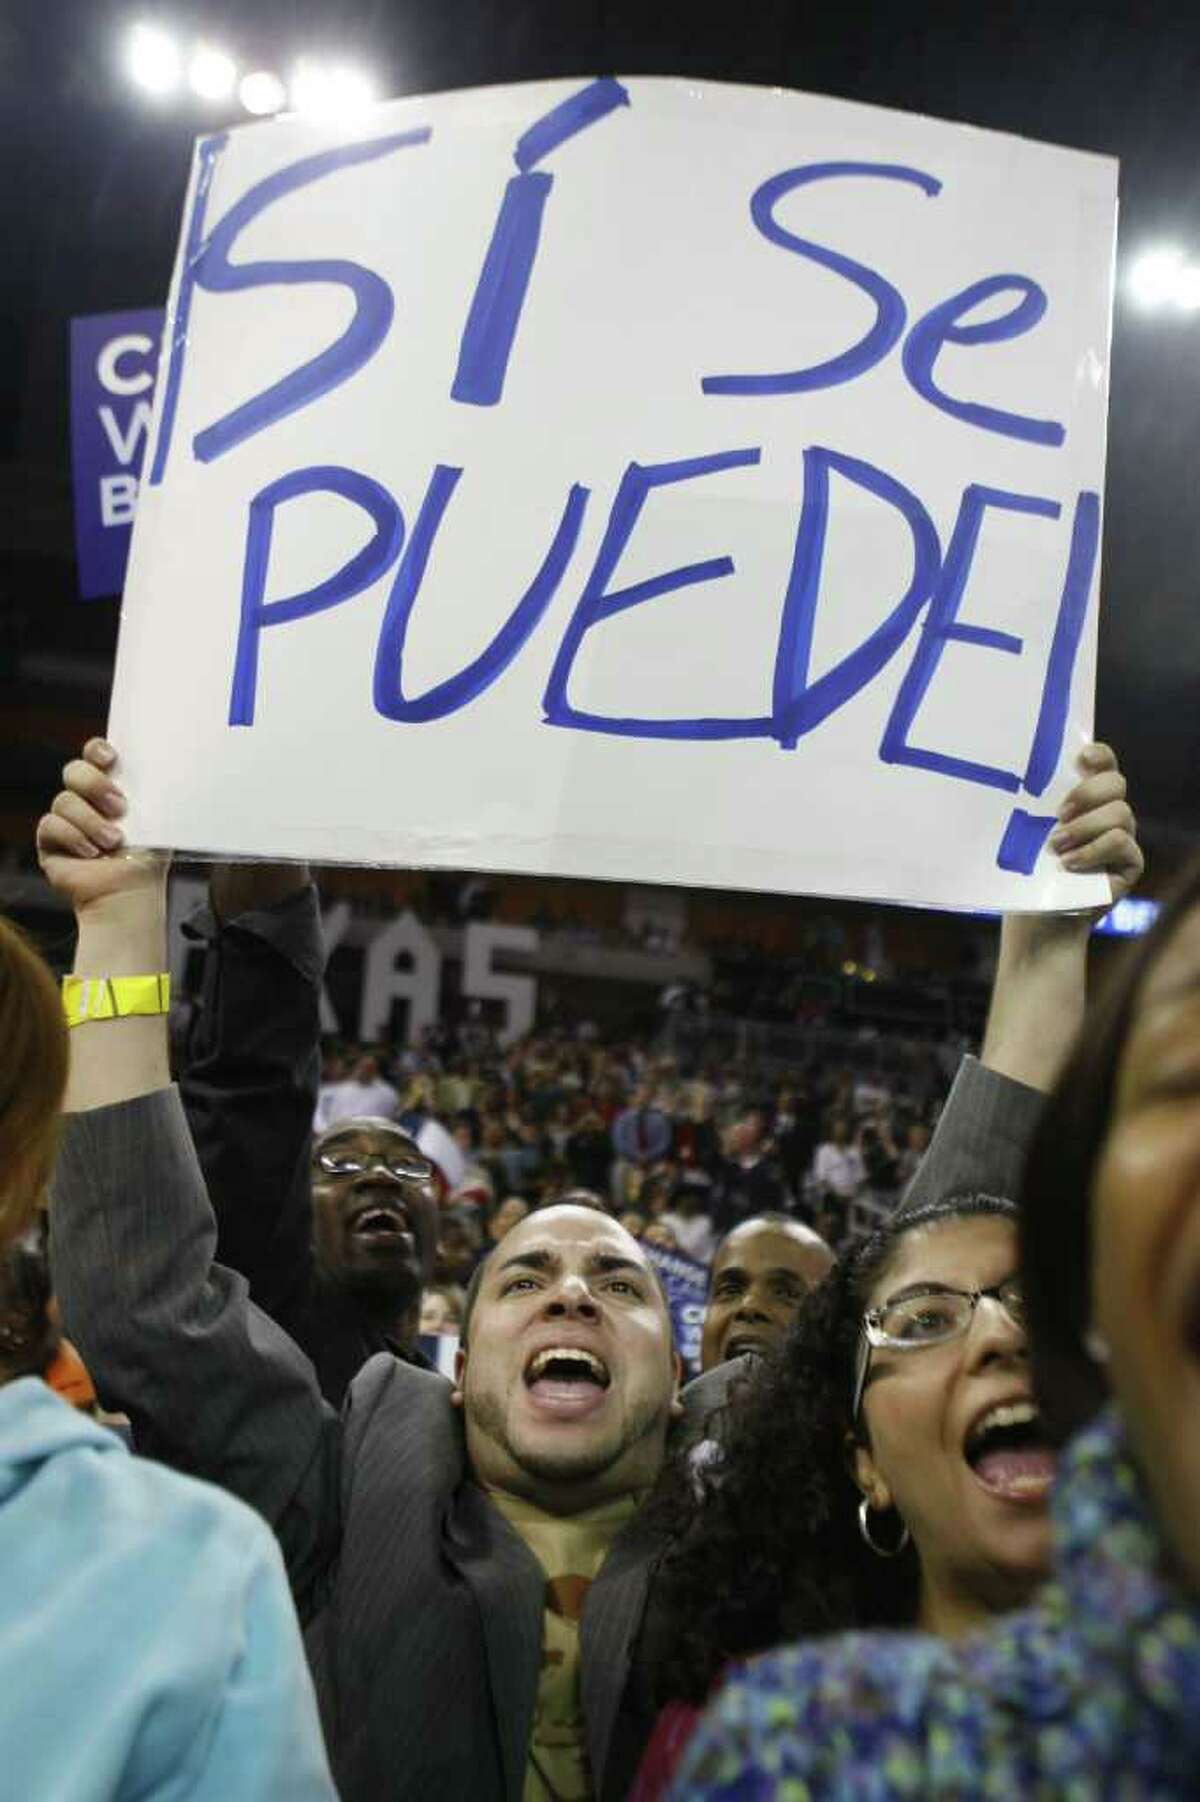 """""""Si Se Puede"""" shouts Jose Rivera before Barack Obama delivered a speech at the Toyota Center during sold out """"Stand for Change"""" rally on Tuesday, Feb. 19, 2008 in Houston, TX. Photo by Mayra Beltran / Chronicle"""